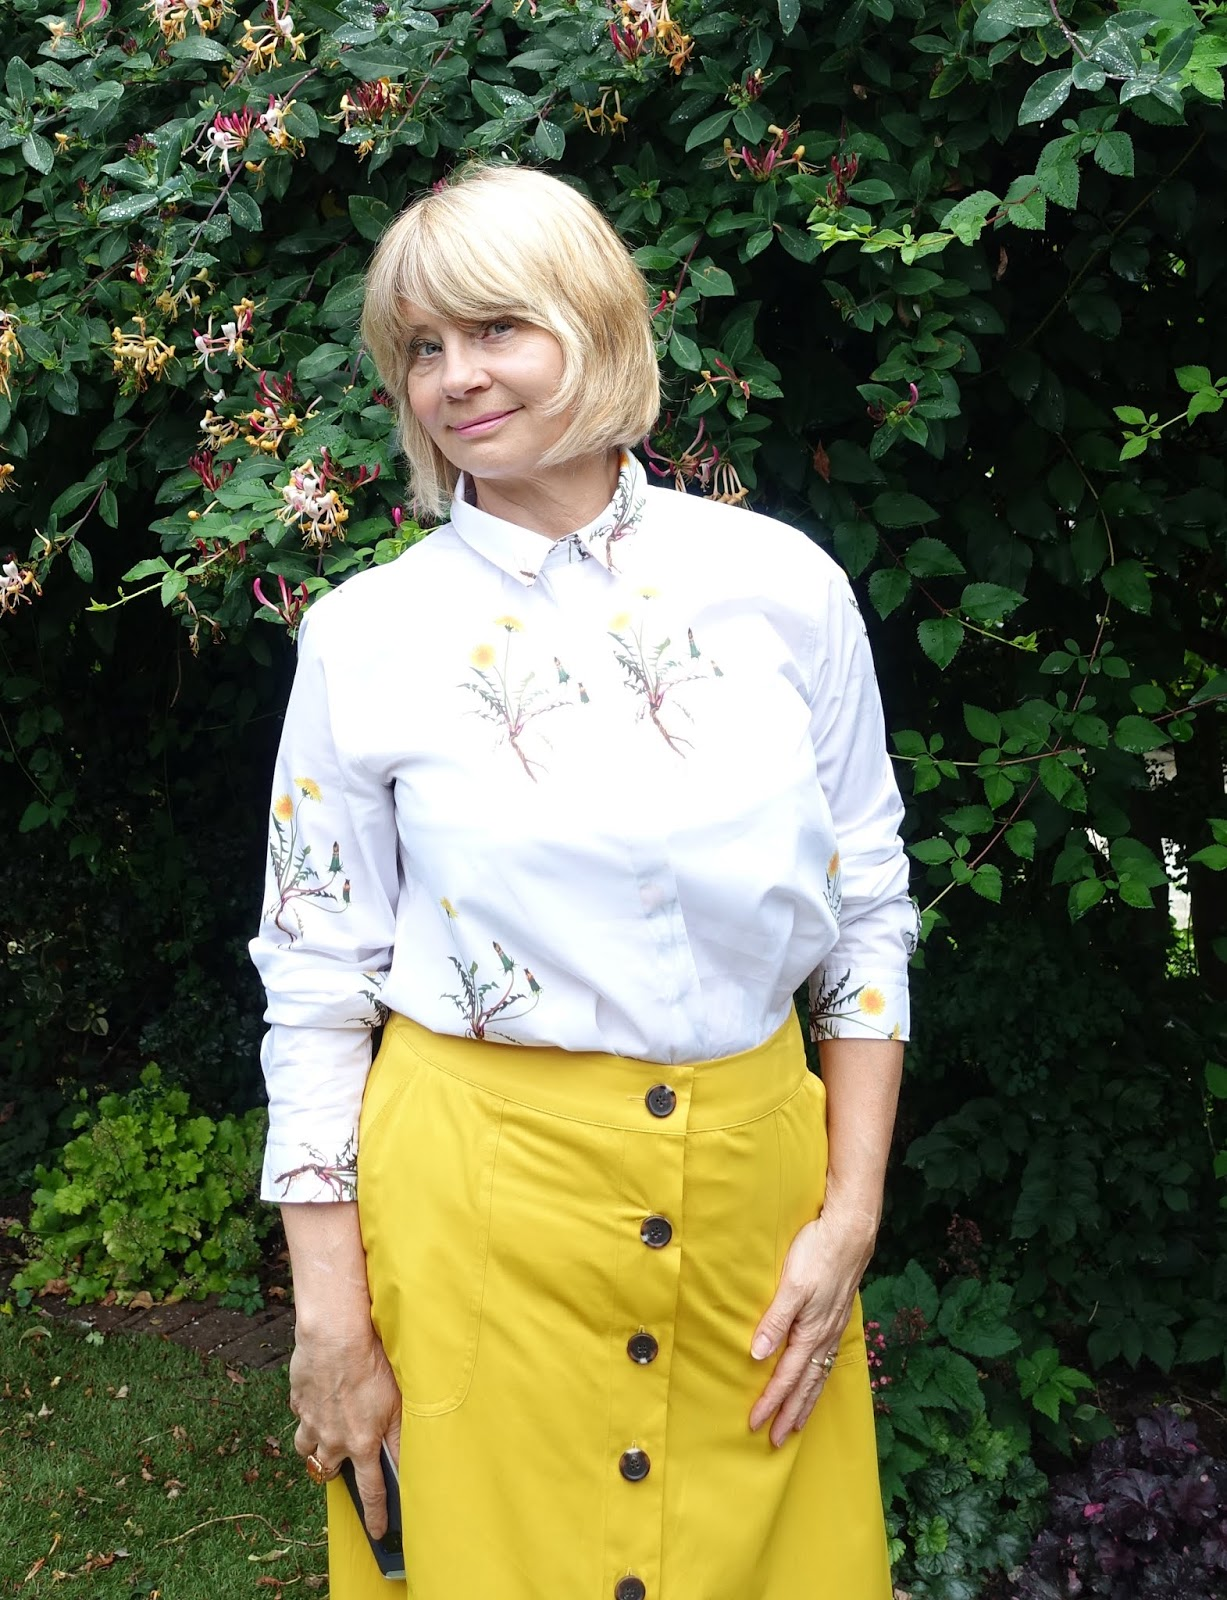 Honeysuckle backdrop for over-50s woman in golden yellow skirt and white blouse with yellow flower print